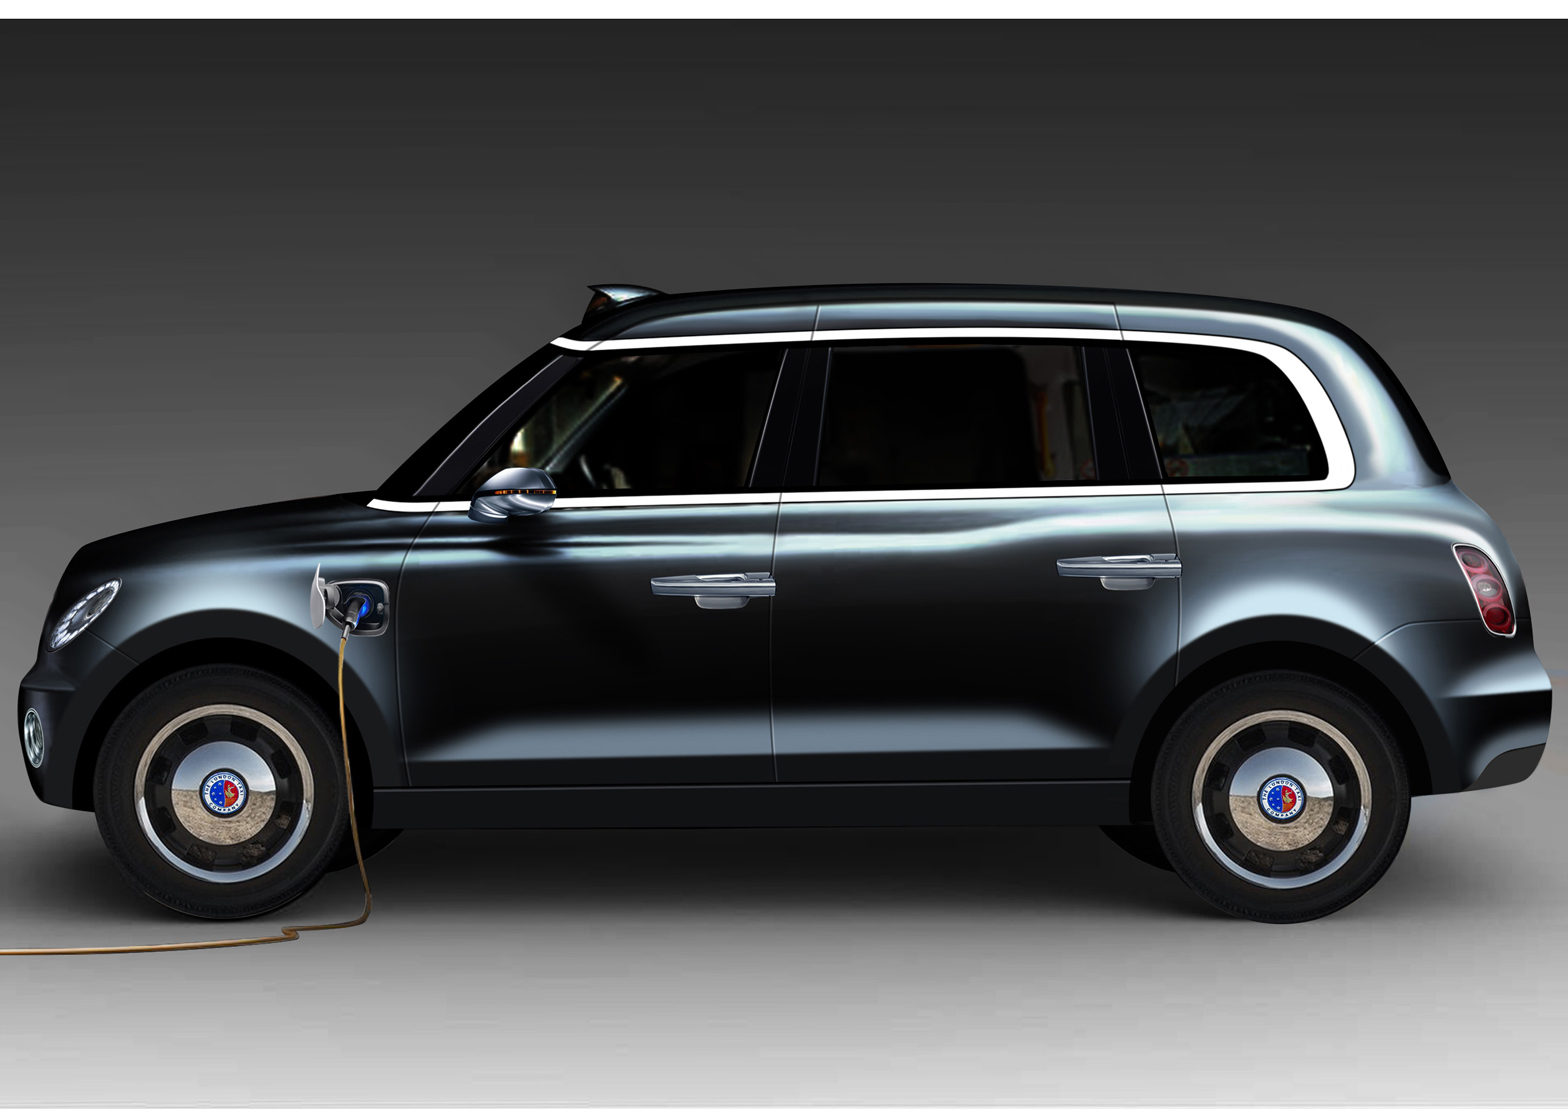 The TX5's side profile - but you can tell this is just a prototype render, as the rear door handle is in the wrong place (the production version has rear-hinged doors).